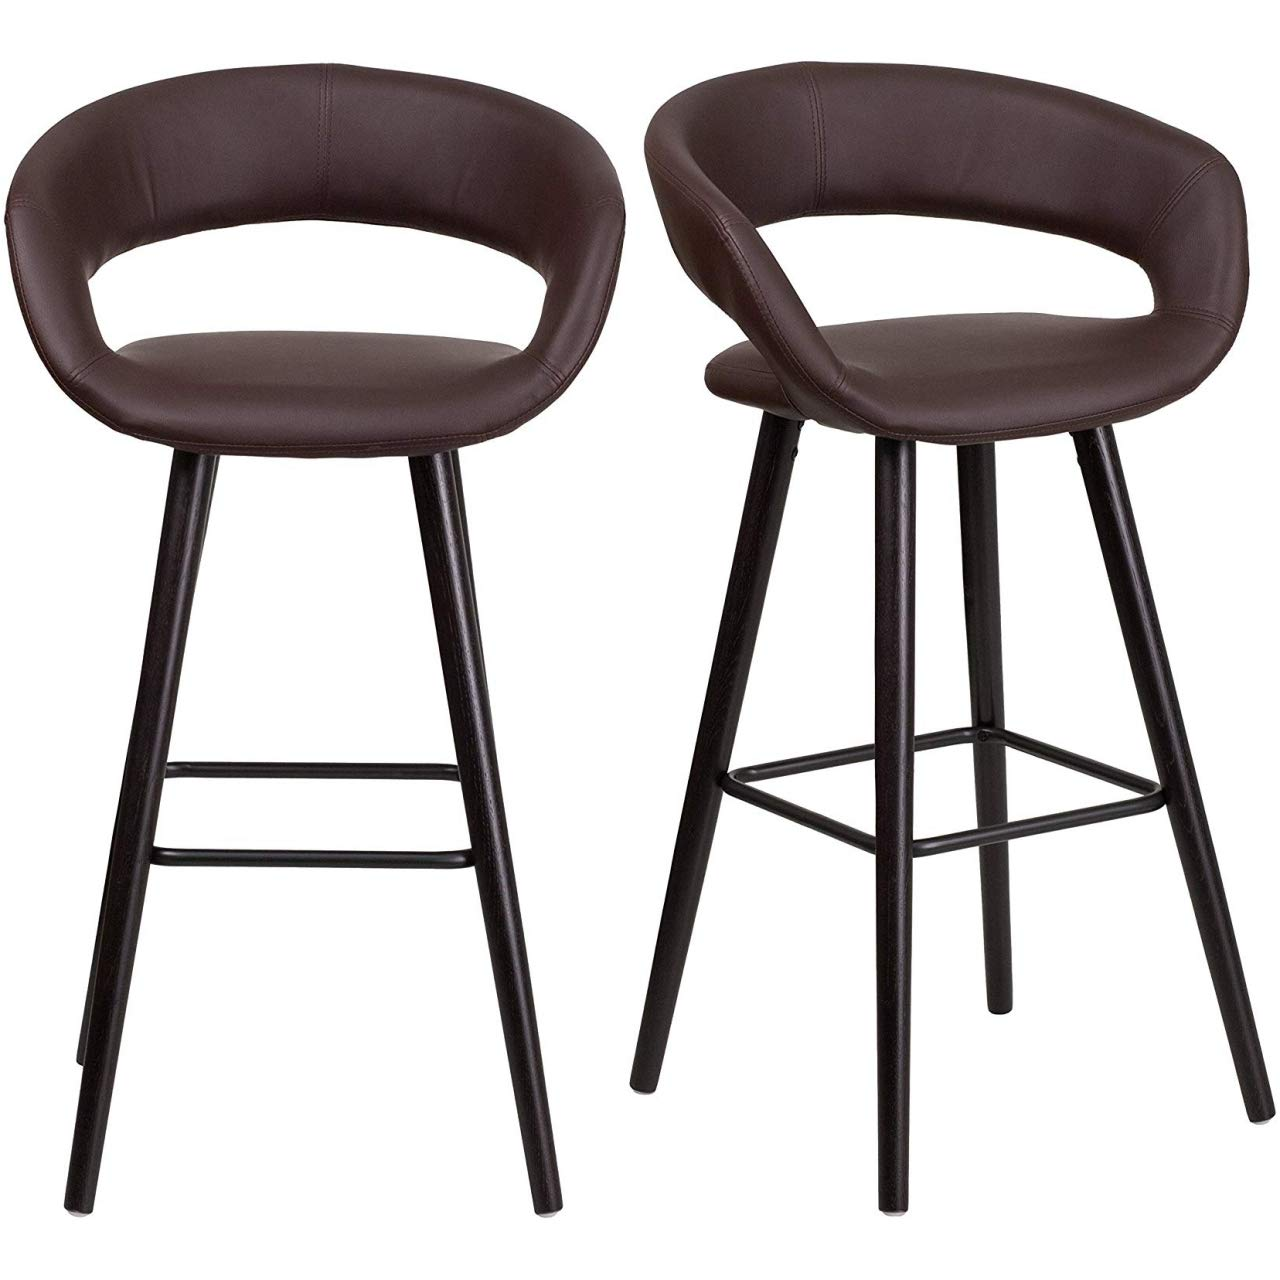 """KLS14 Set of 2 Contemporary Rounded Low Back Design 29.5"""" High Bar Stools Commercial Dining Chairs Home Office Furniture, Brown Vinyl/2365"""